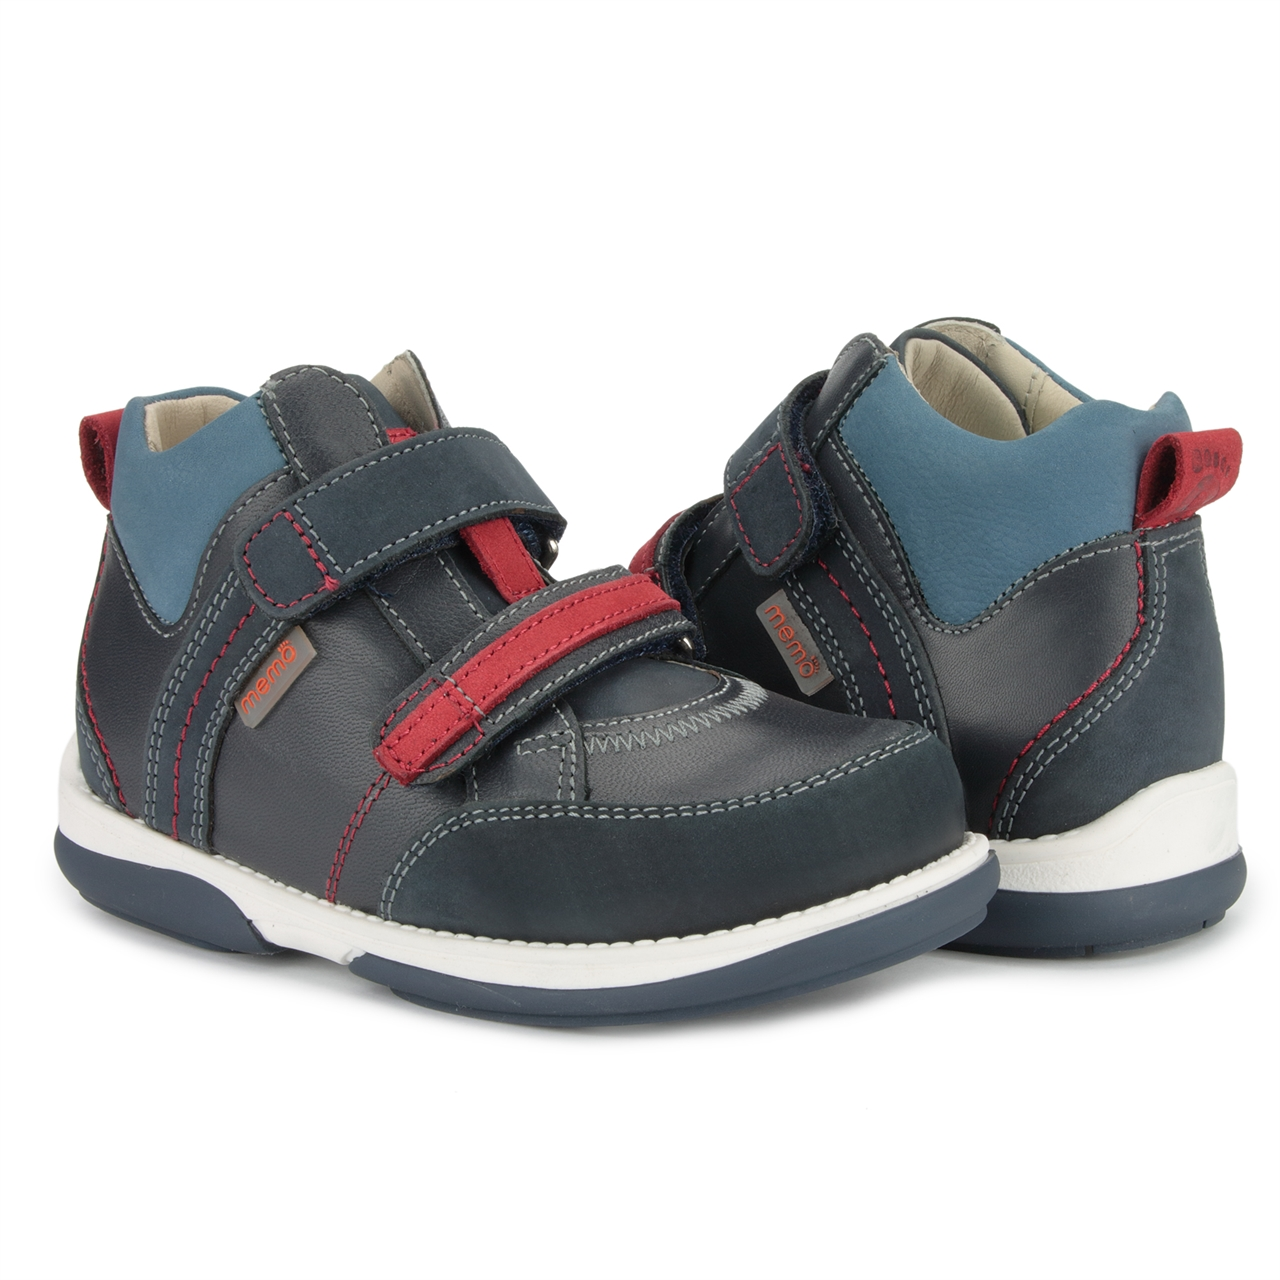 Orthopedic Boots Boys Girls Autumn Spring with Arch Support